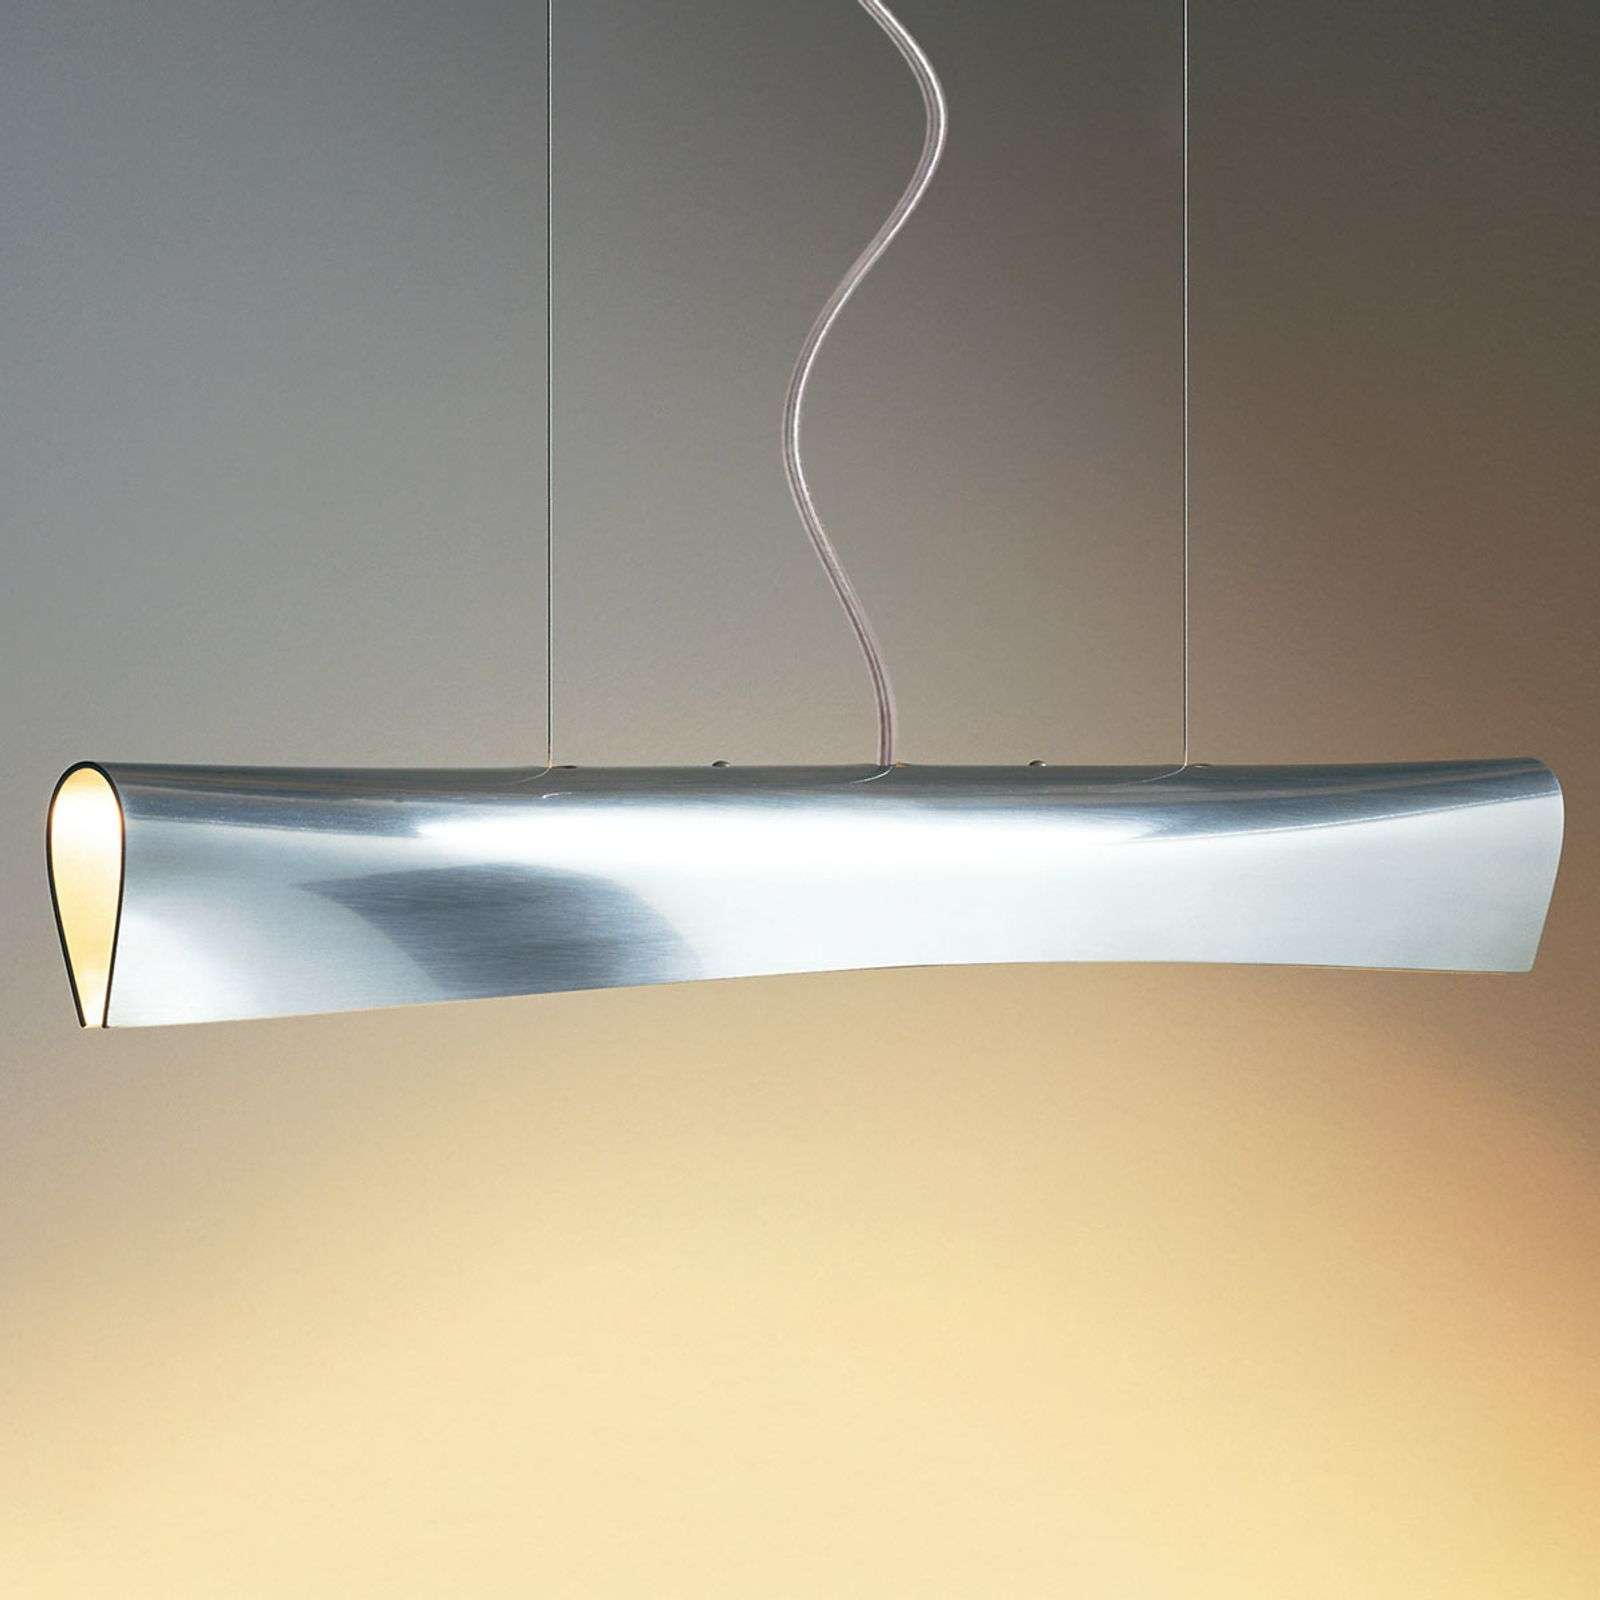 Suspension LED de designer Nil, câble transparent